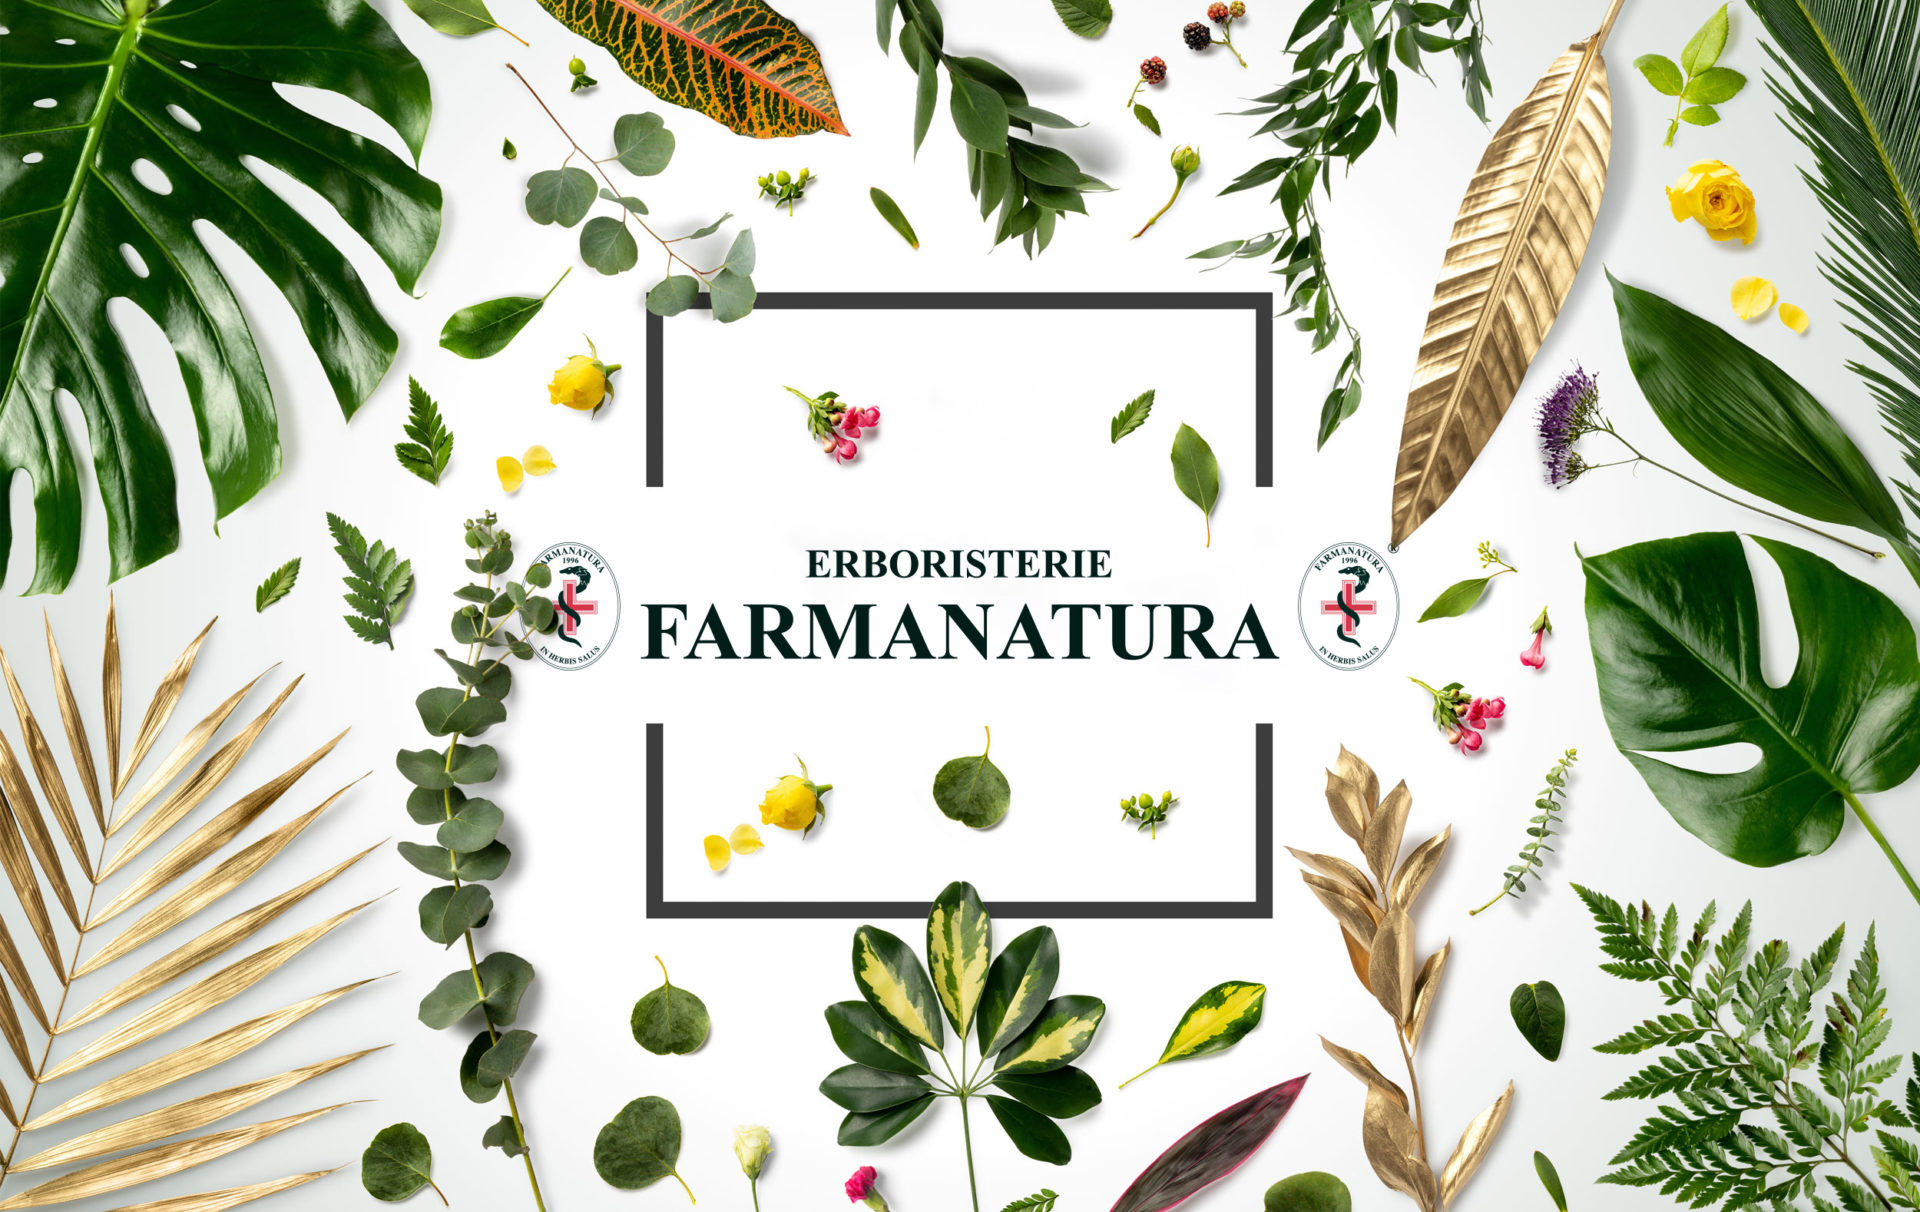 Erboristerie FARMANATURA